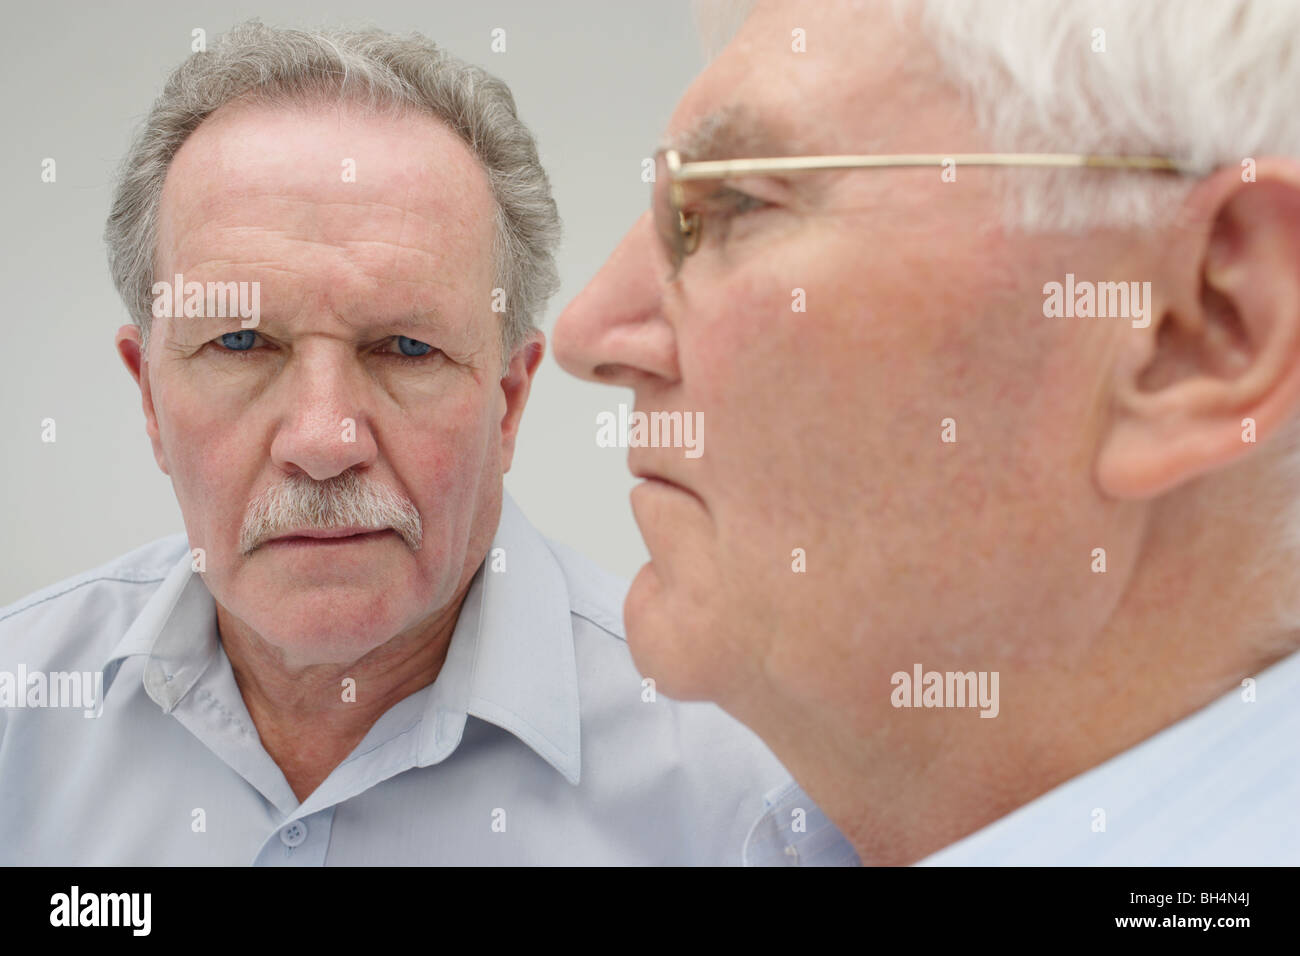 Close up portrait of two senior men with serious expressions - Stock Image